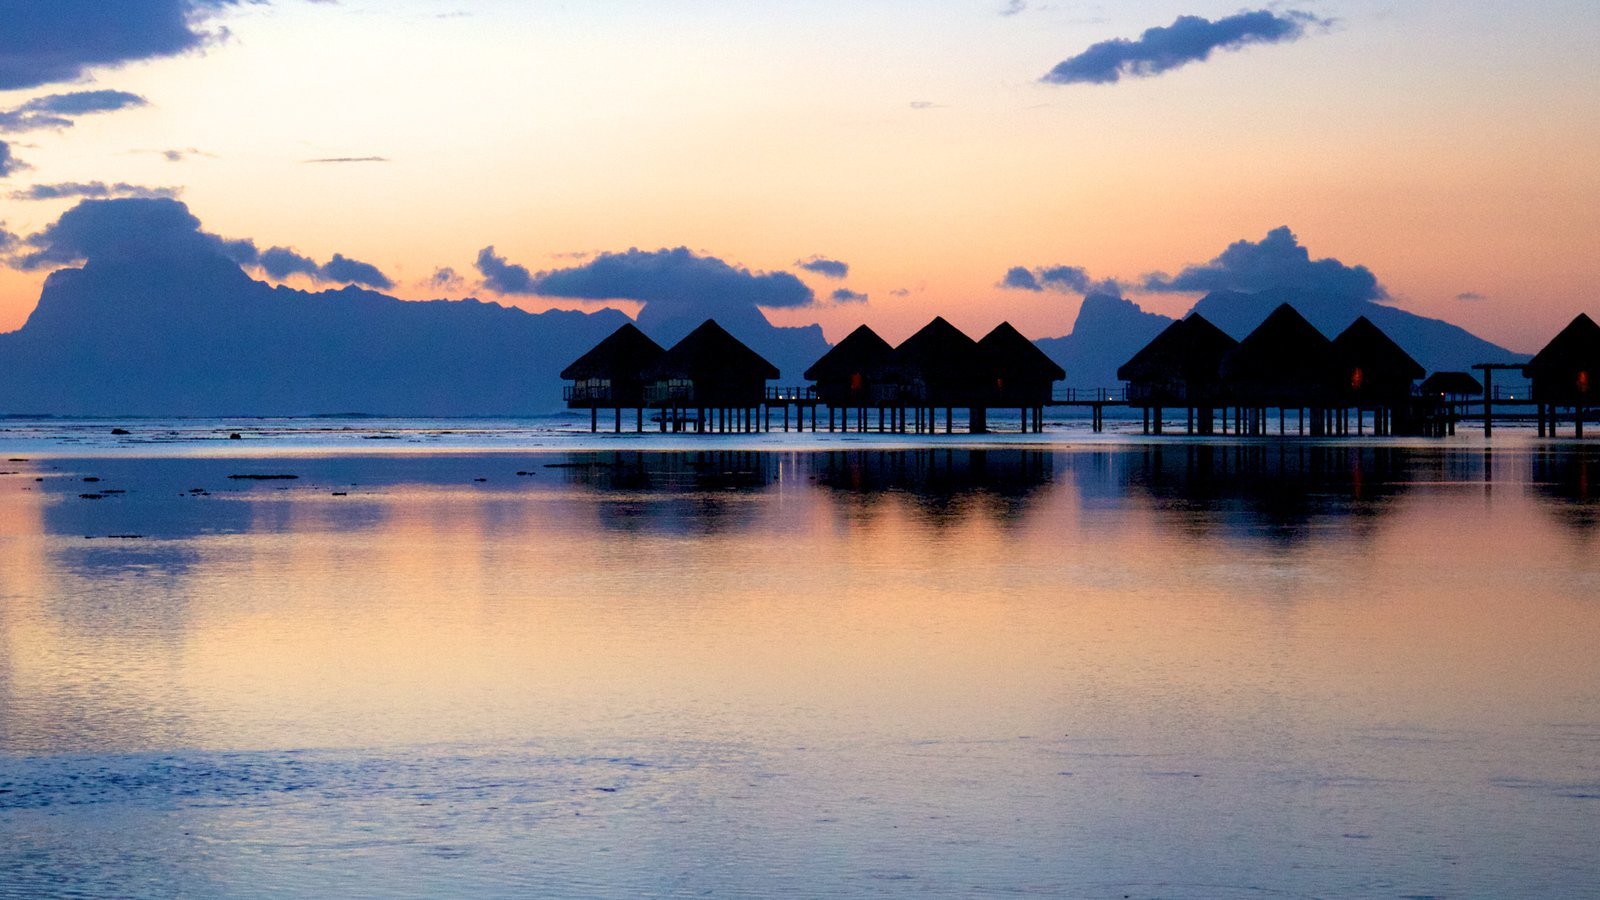 Tahiti which includes a sunset and general coastal views